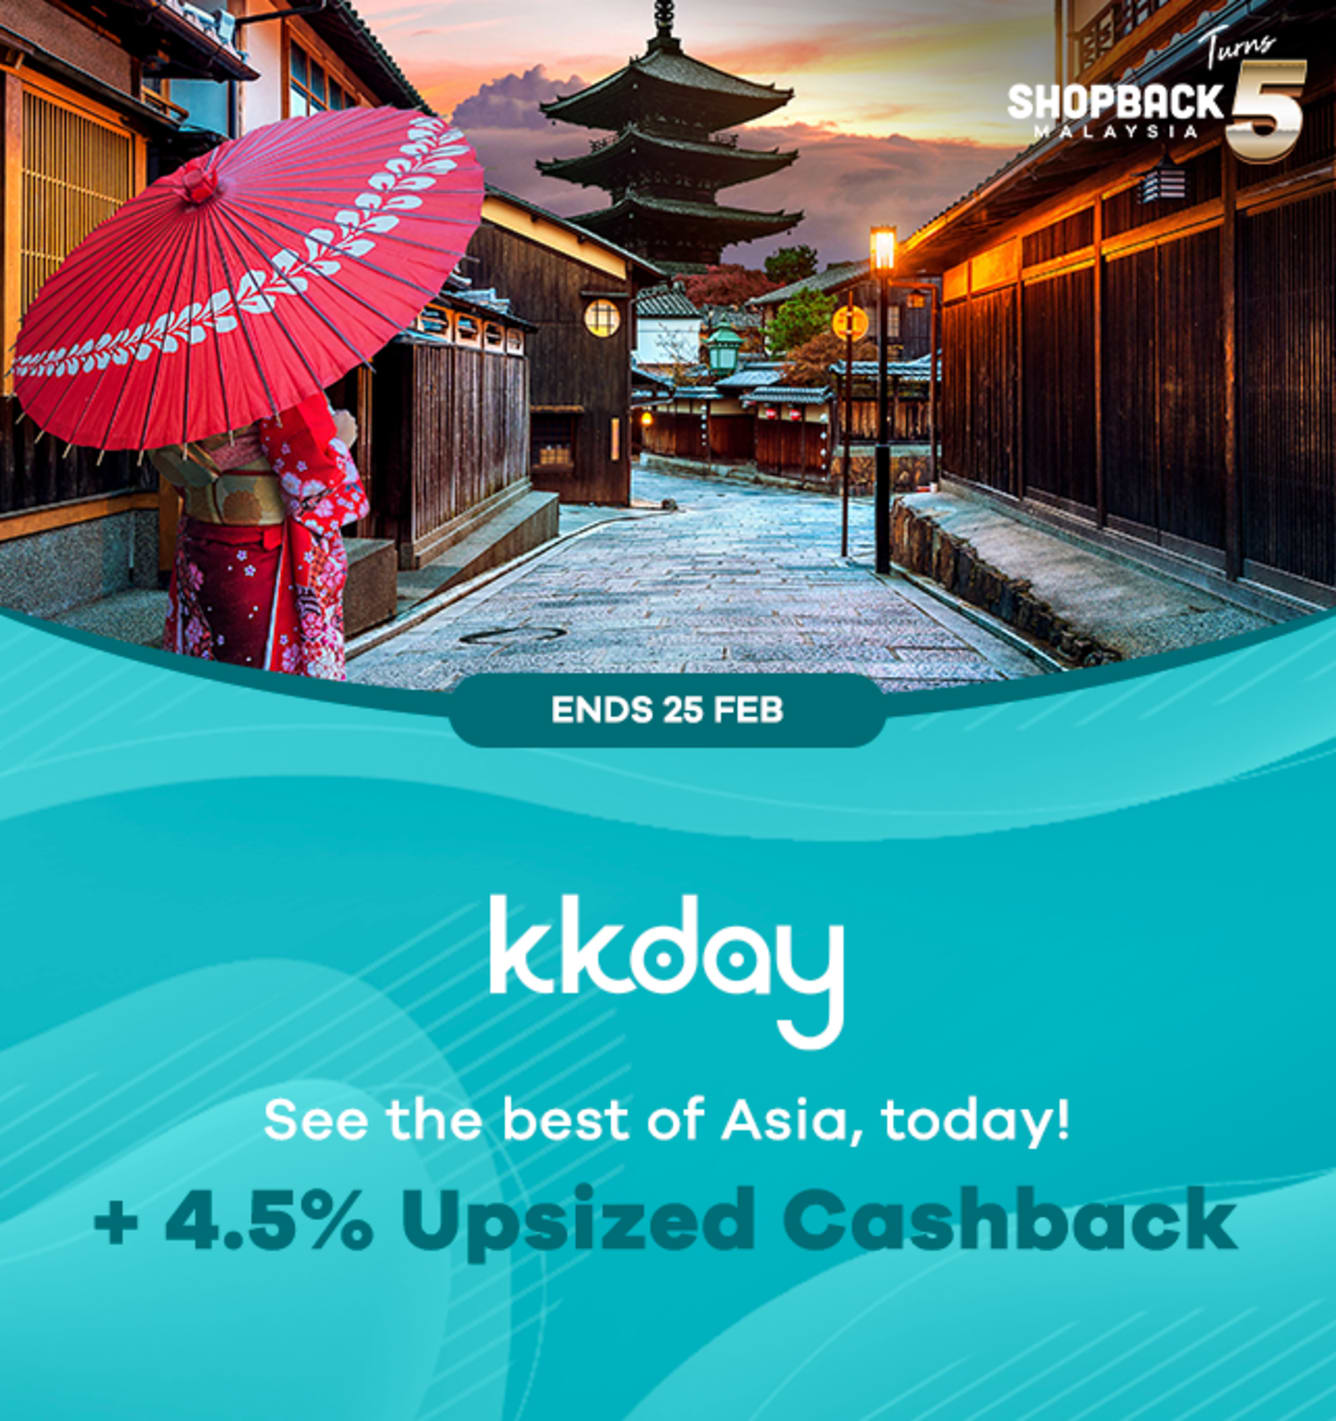 KKDay 4.5% Upsized Cashback